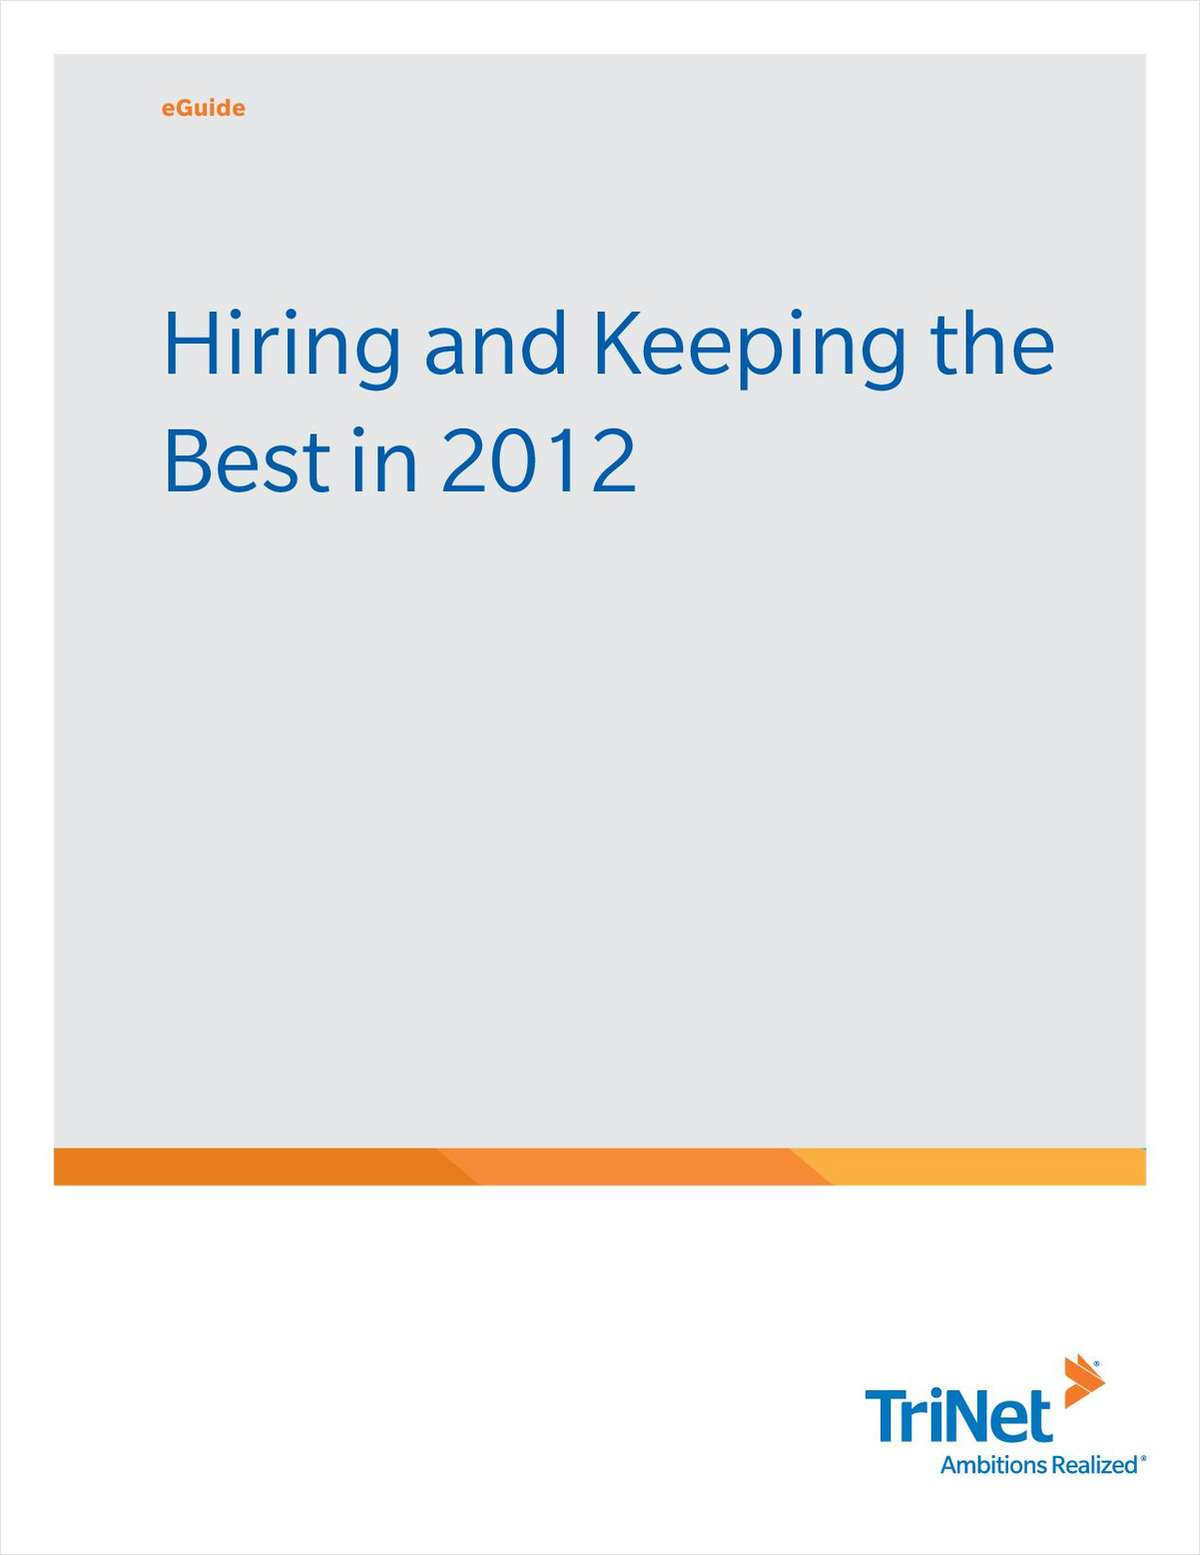 Hiring and Keeping the Best